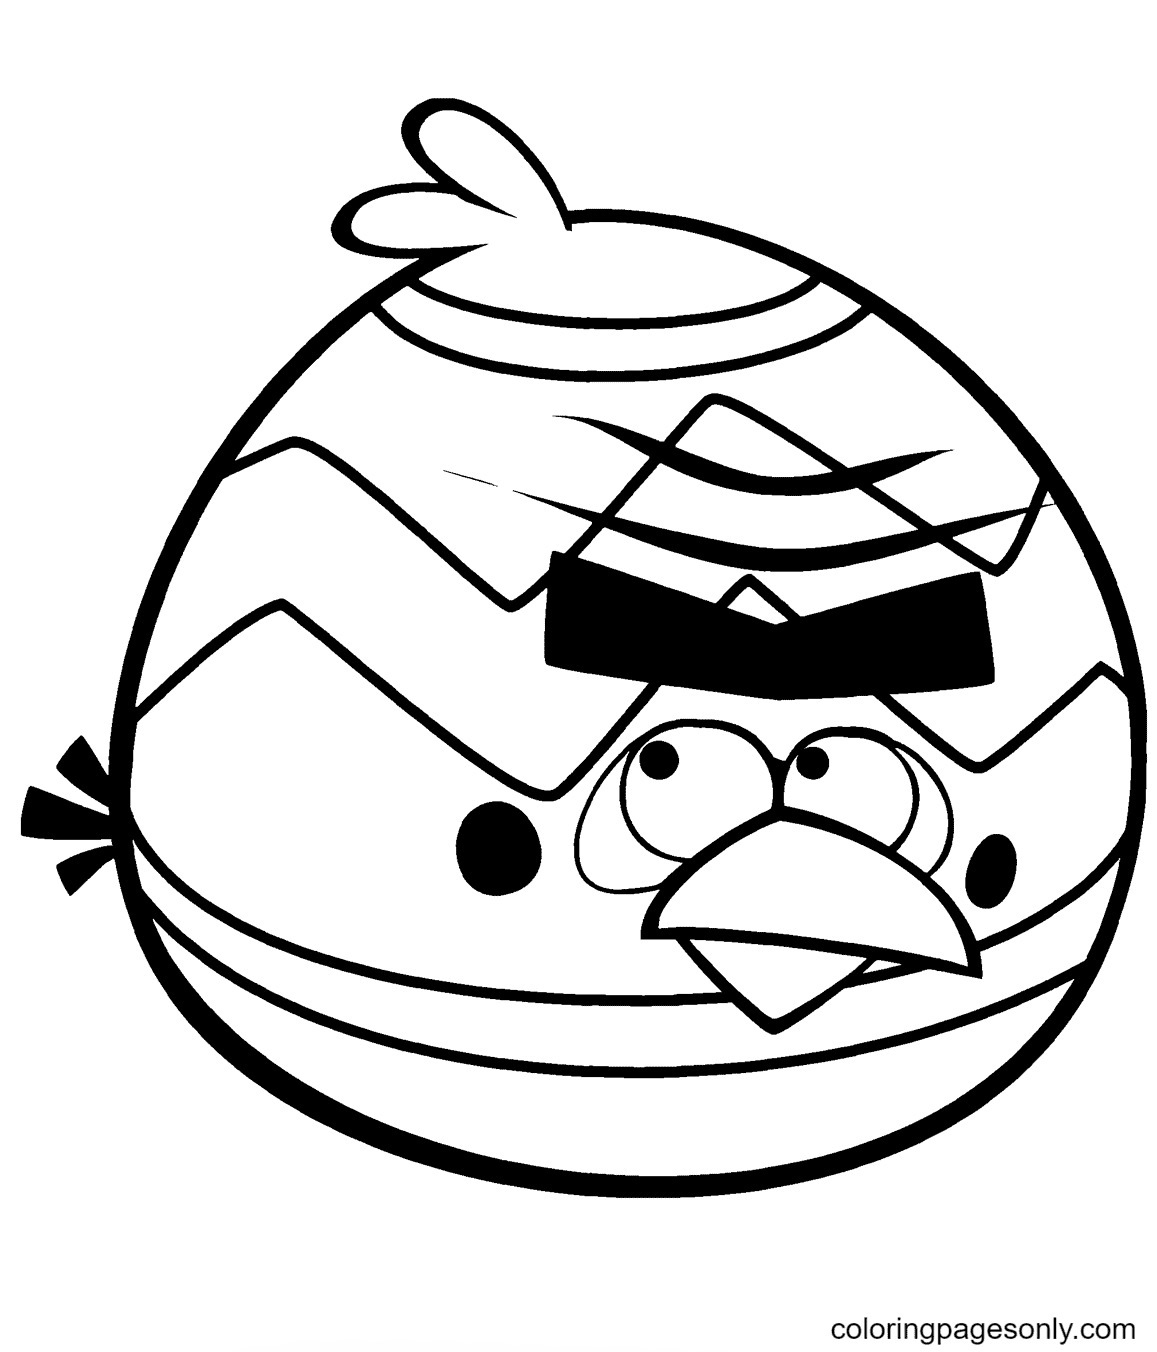 Easter Terence Bird Coloring Page